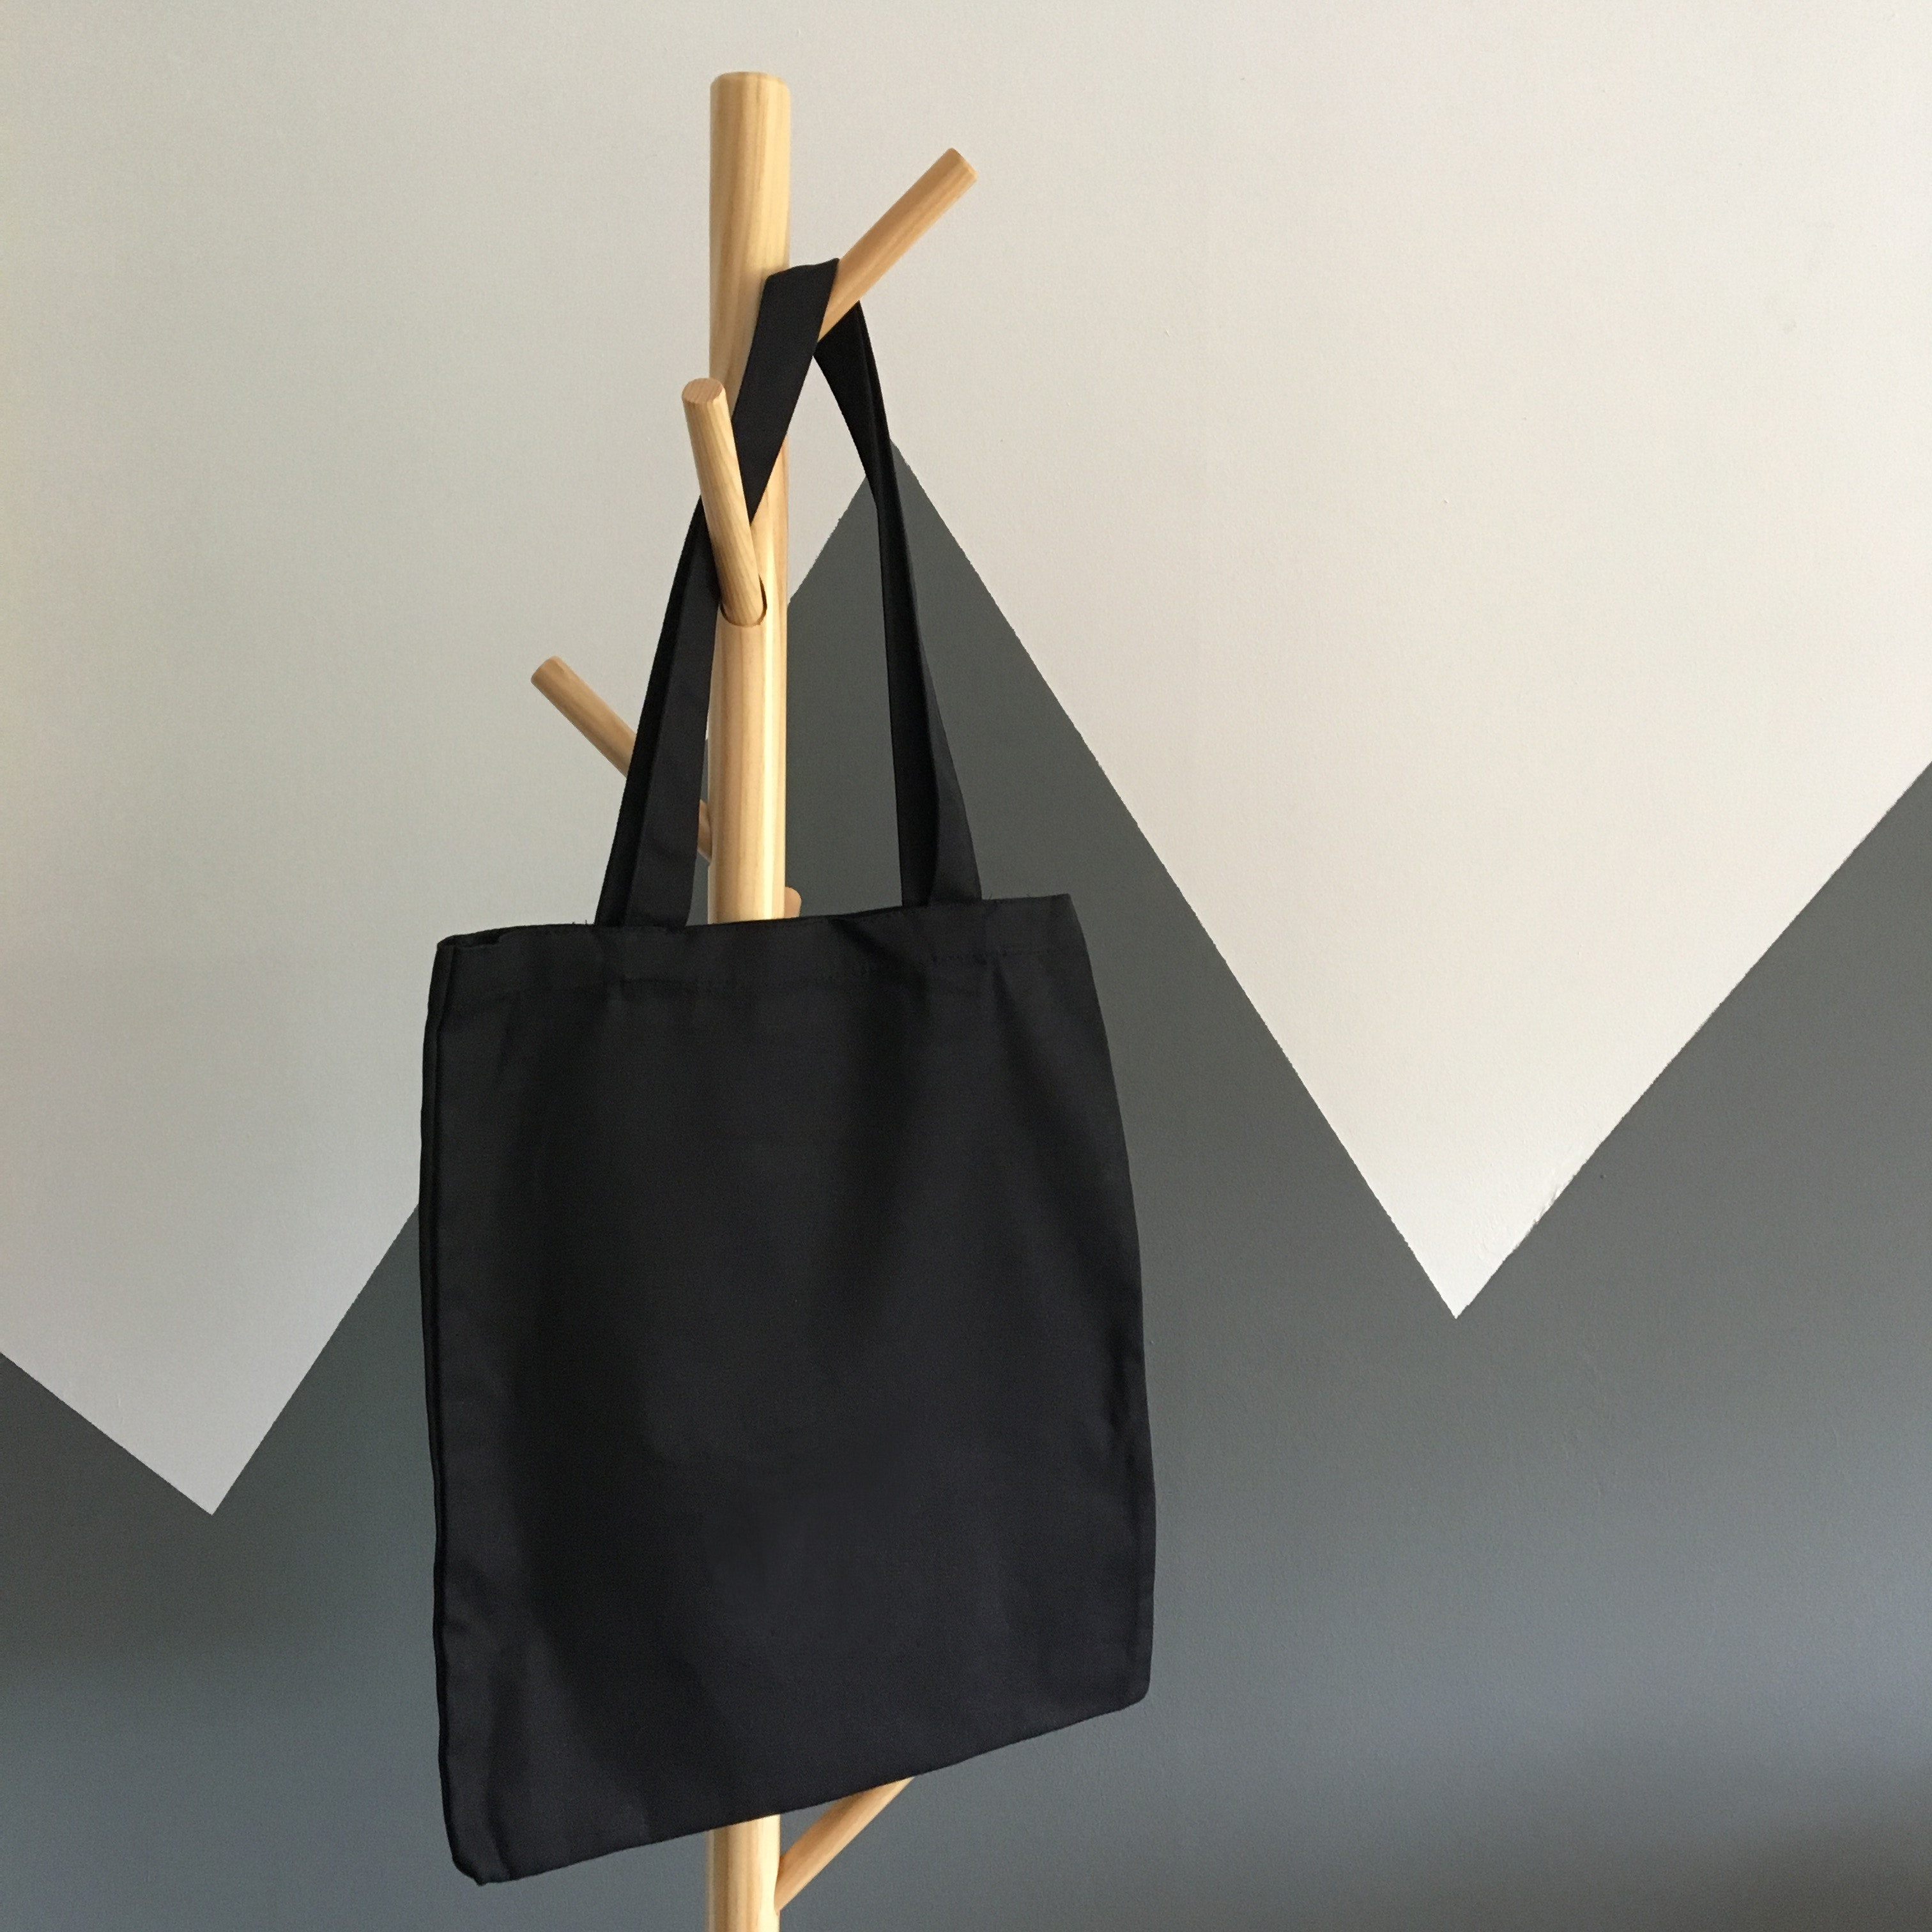 Wholesale Tote Bag Printing in Singapore: Fast, Great Prints, Quality Bag.